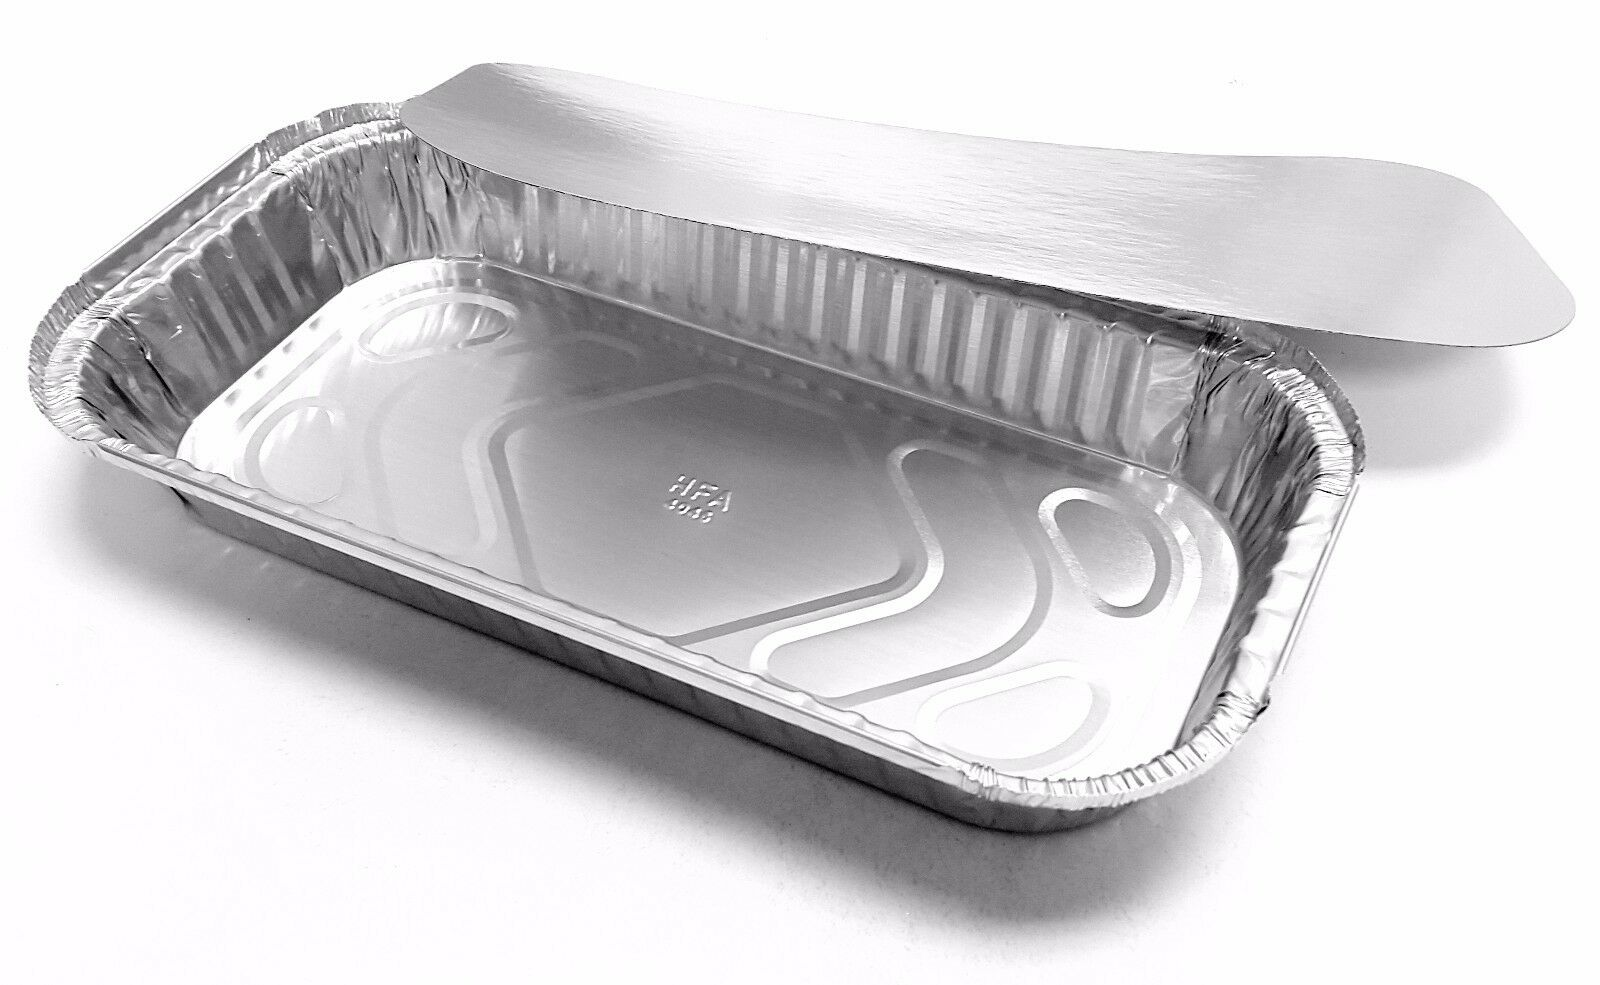 Handi-Foil 3 lb. Oblong Aluminum Entrée Take-Out Pan Trays w/Board Lid 250 Sets